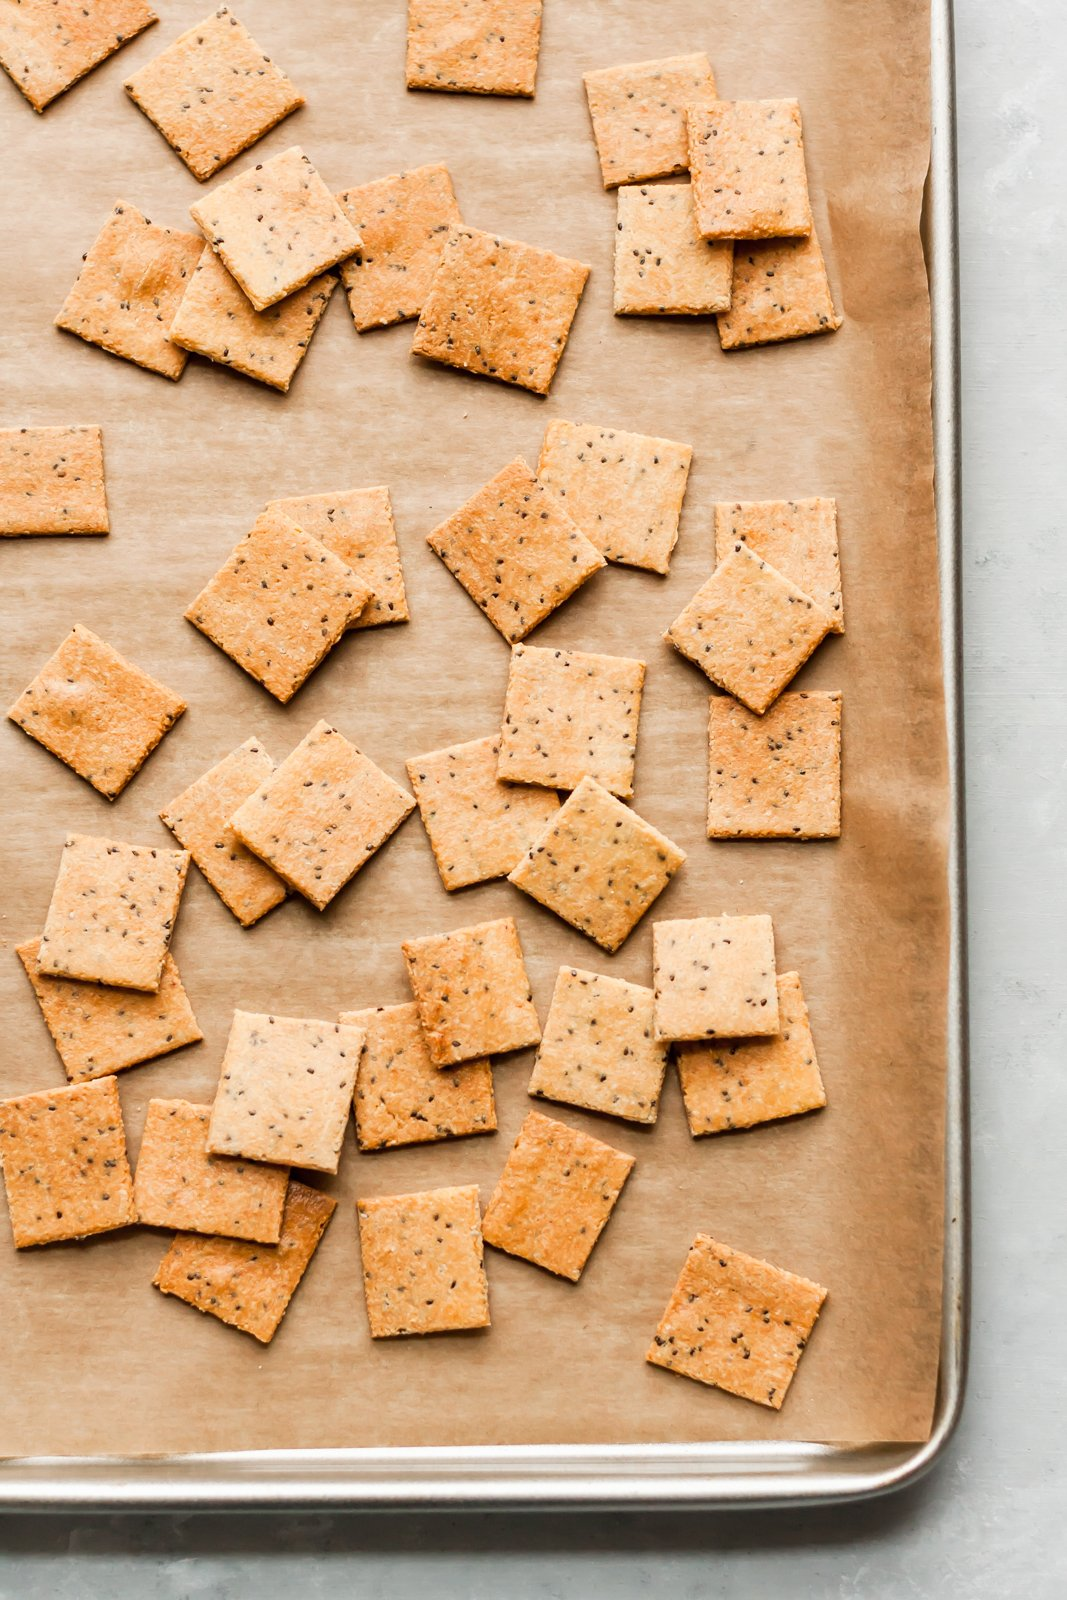 Paleo crackers made with almond flour! You'll only need 4 ingredients for these delicious, protein packed low carb crackers. Plus we've got 5 different flavor variations for you to try.